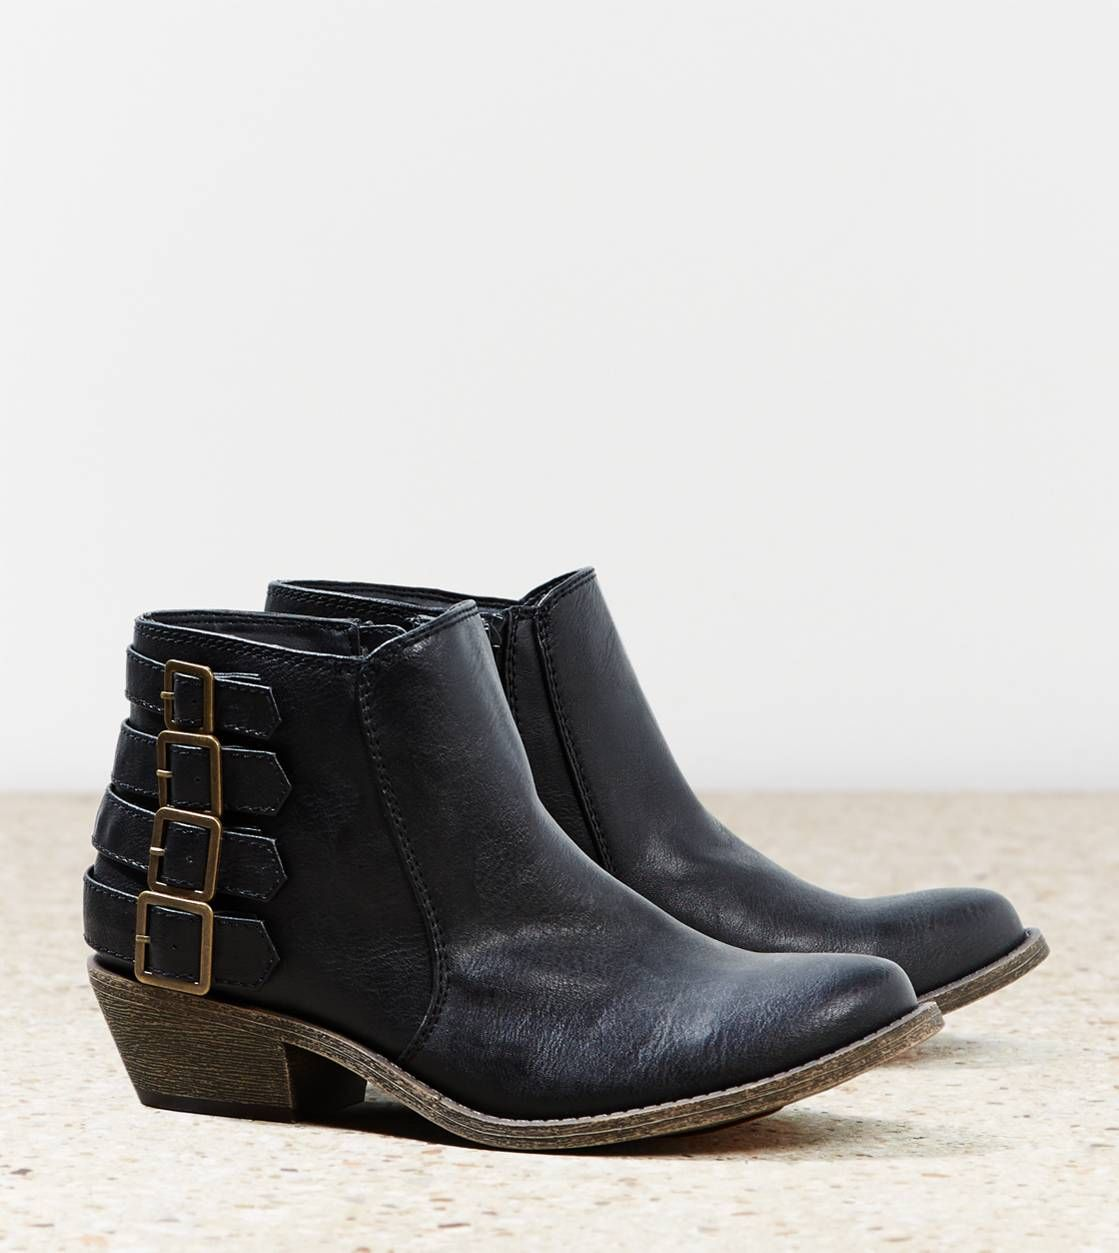 AEO Buckle Heeled Boot | American eagle outfitters, Ankle boots ...